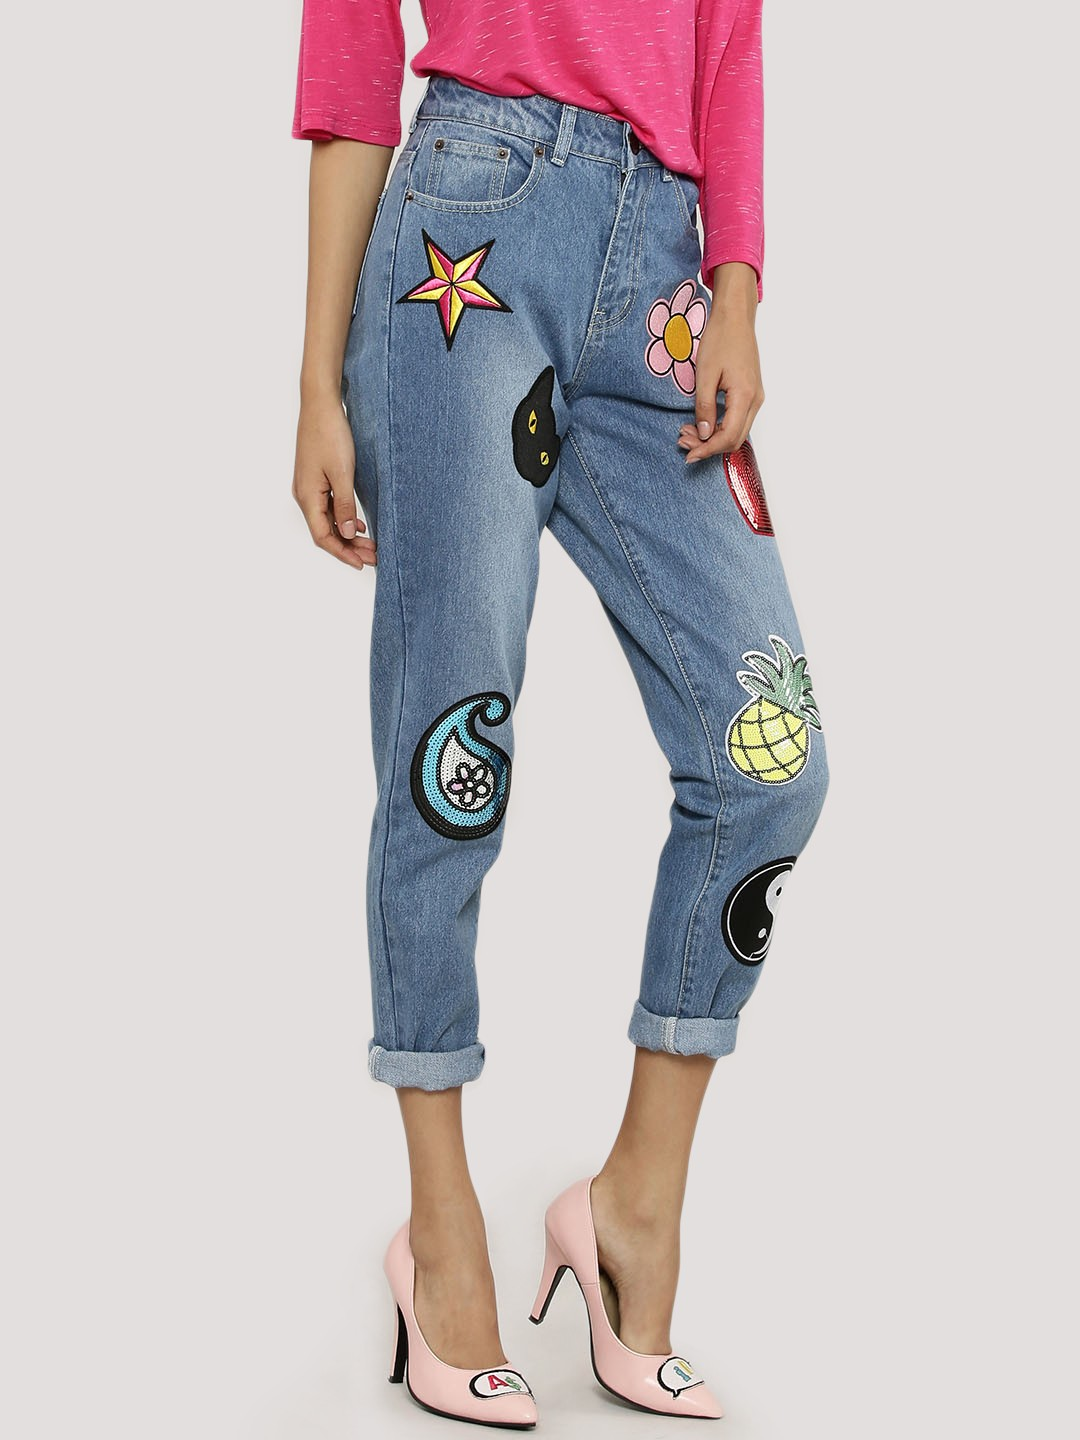 Buy LIQUOR N POKER Novelty Patch Denim Jeans For Women - Womenu0026#39;s Blue/Multi/Green Straight Jeans ...